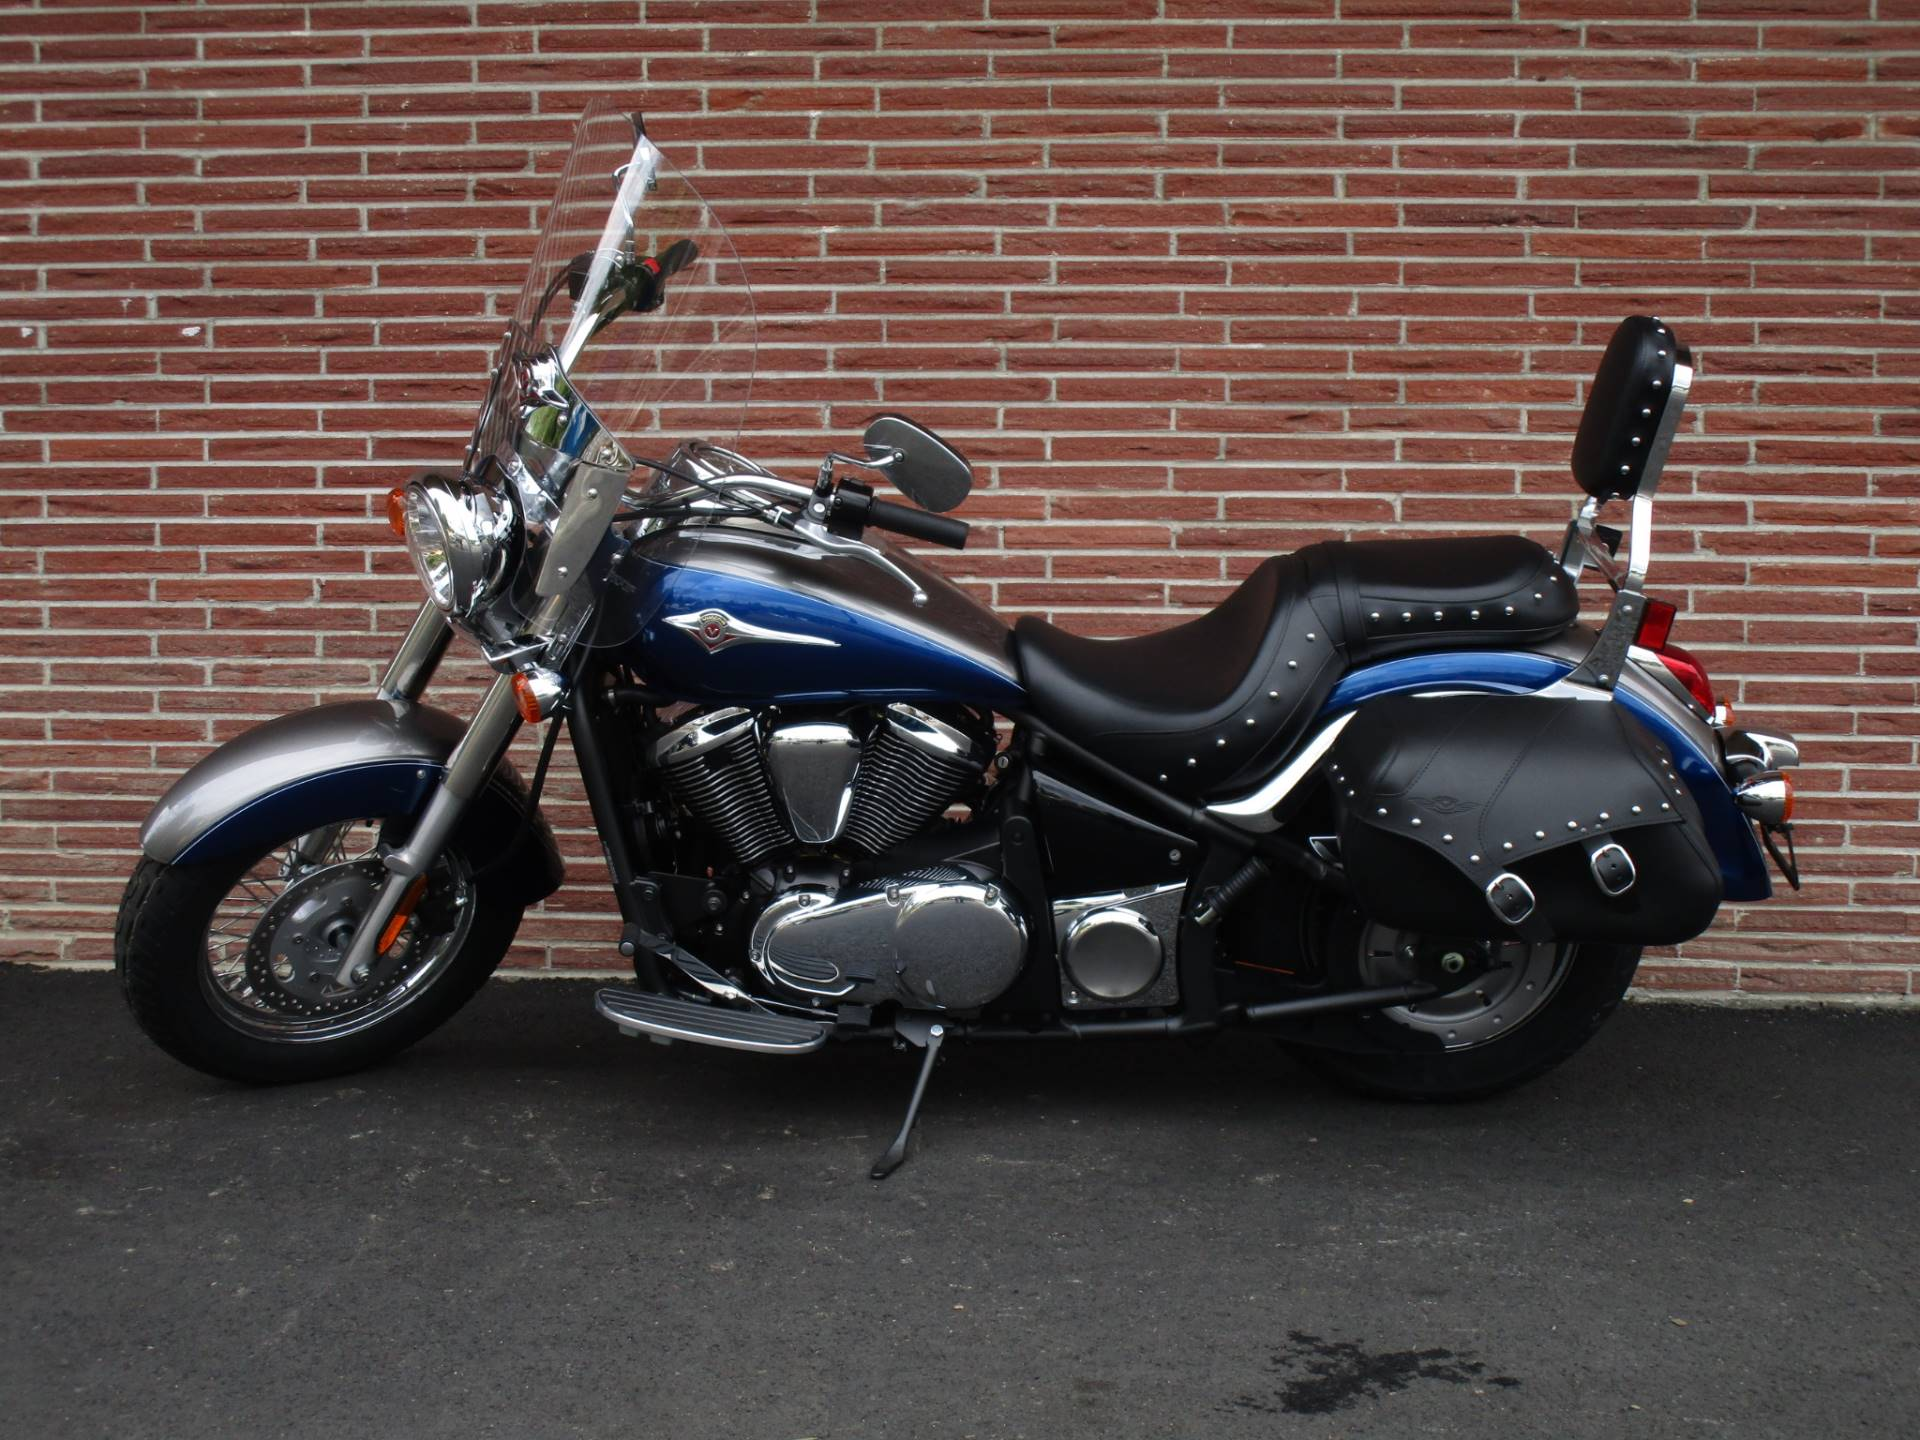 2019 Kawasaki Vulcan 900 Classic LT in Bellevue, Washington - Photo 4